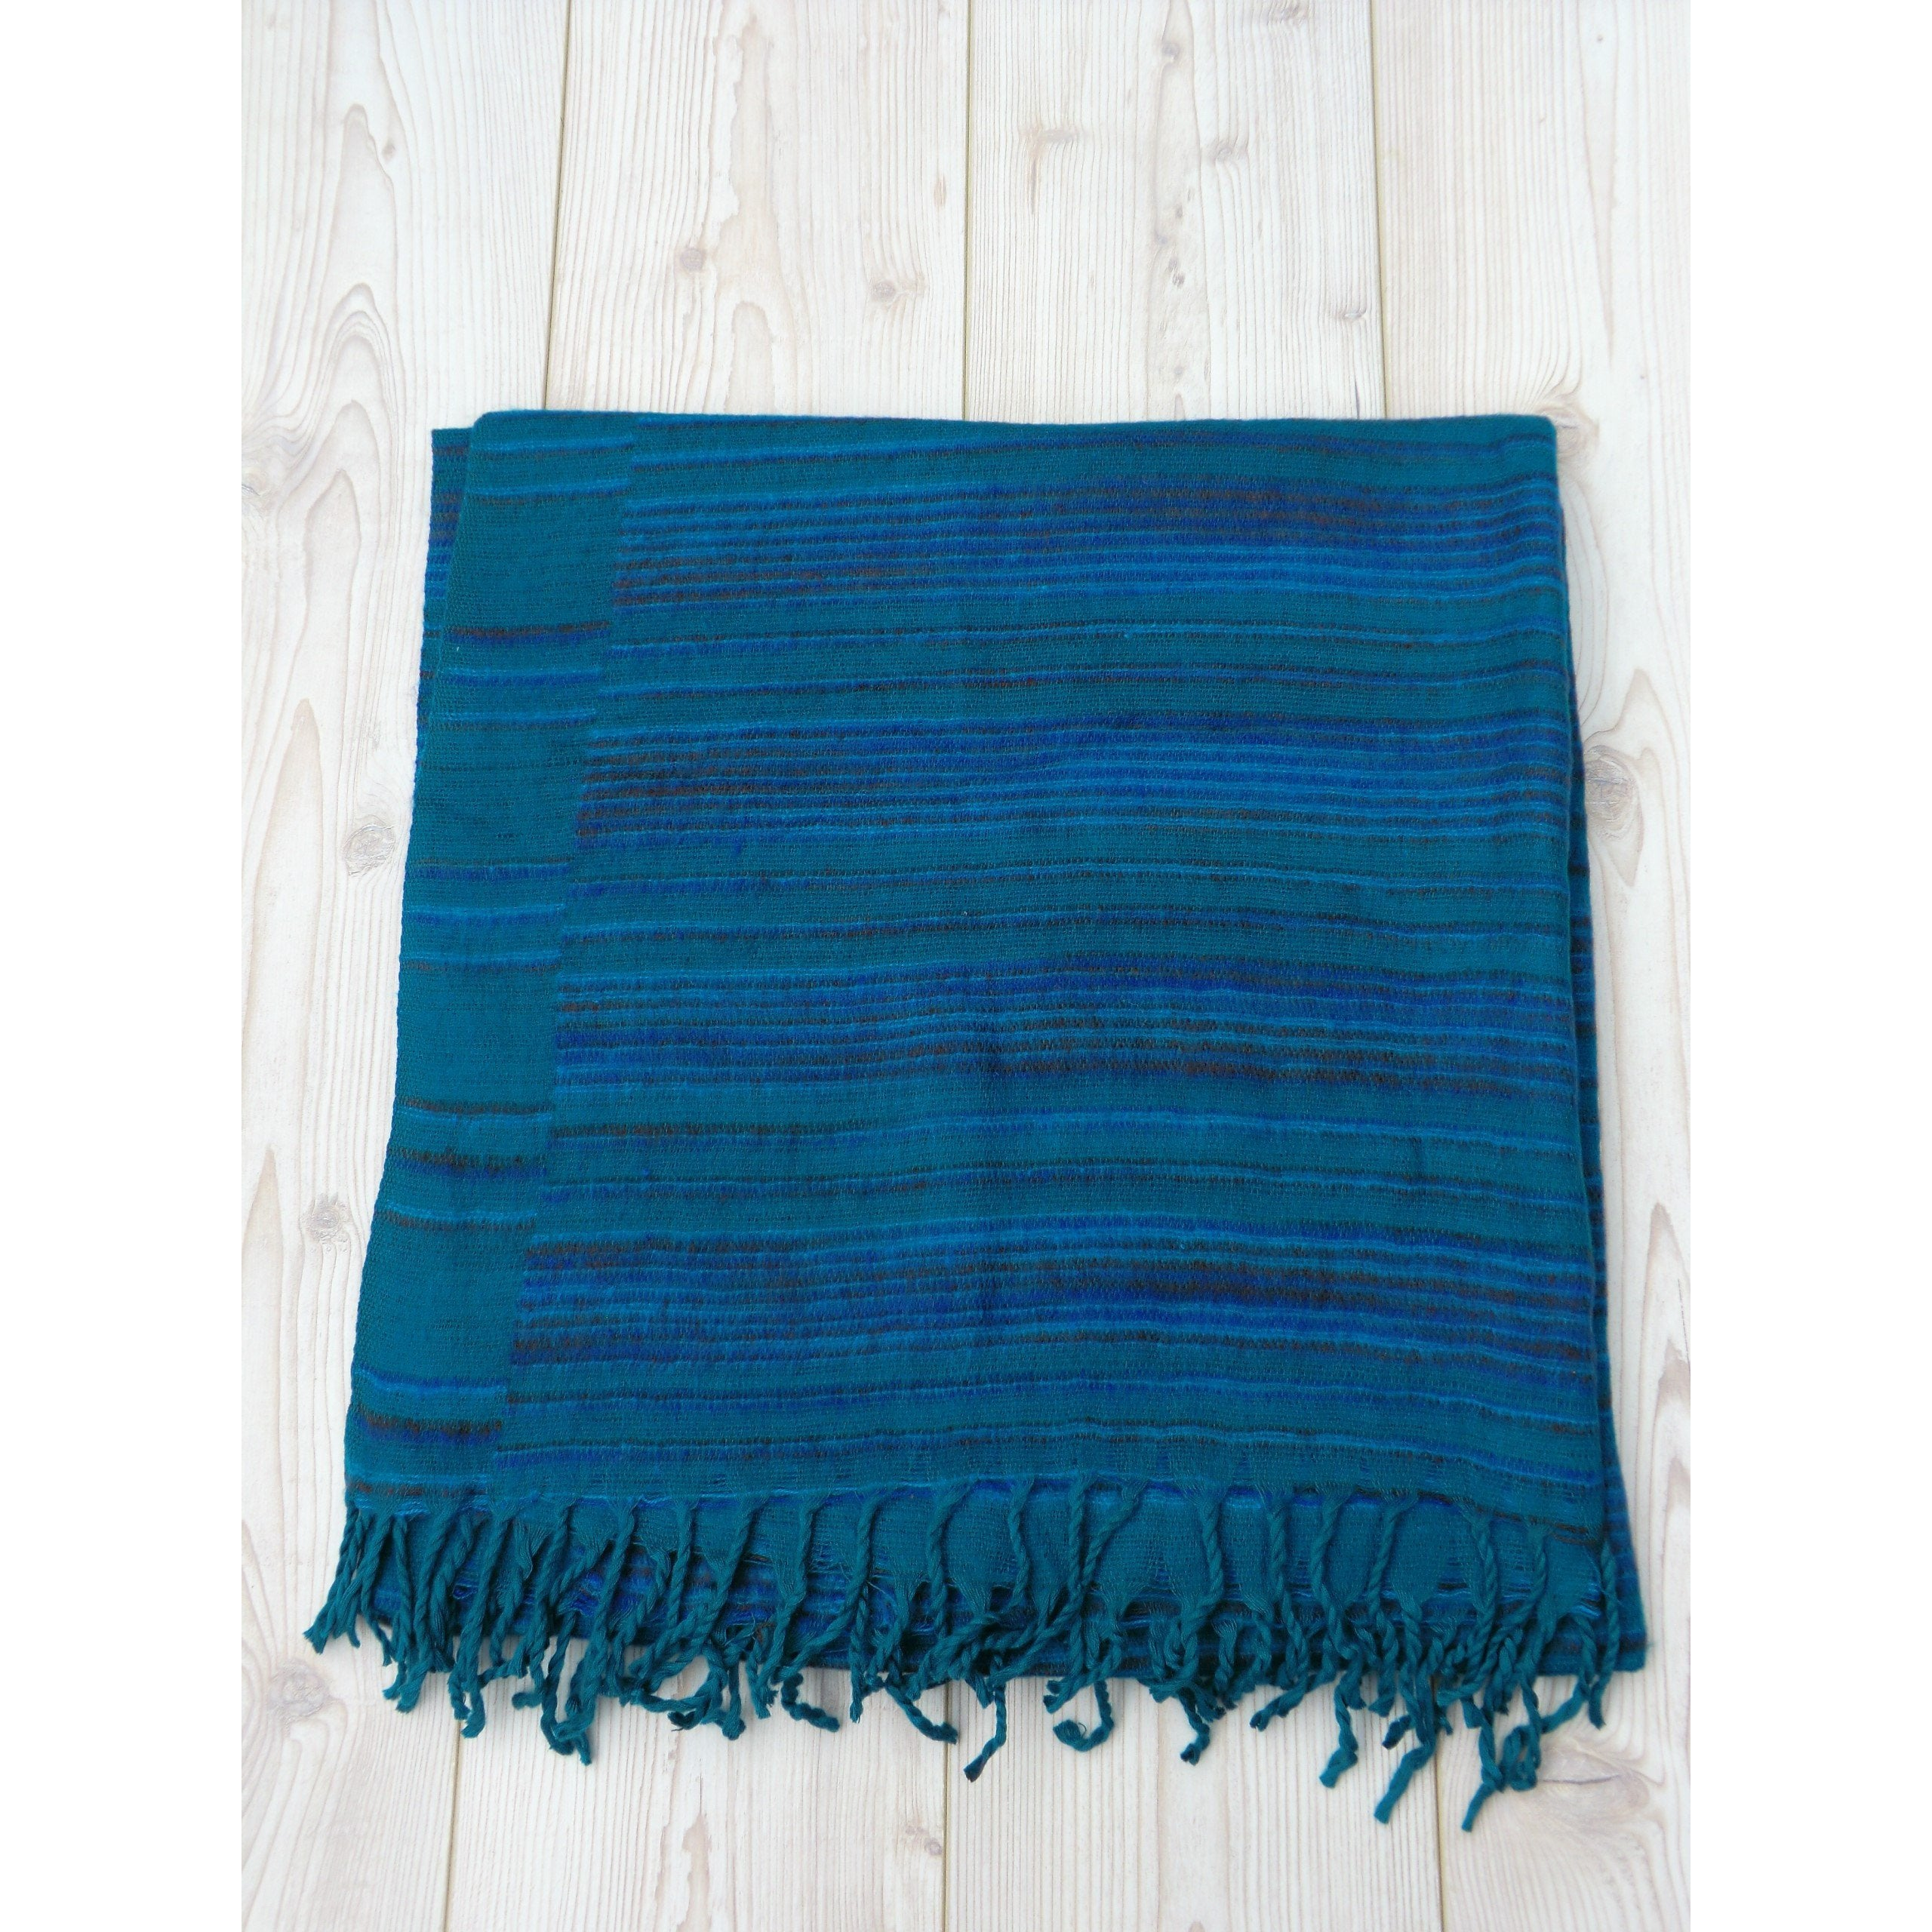 Sea Green Stripey Blanket - Matico